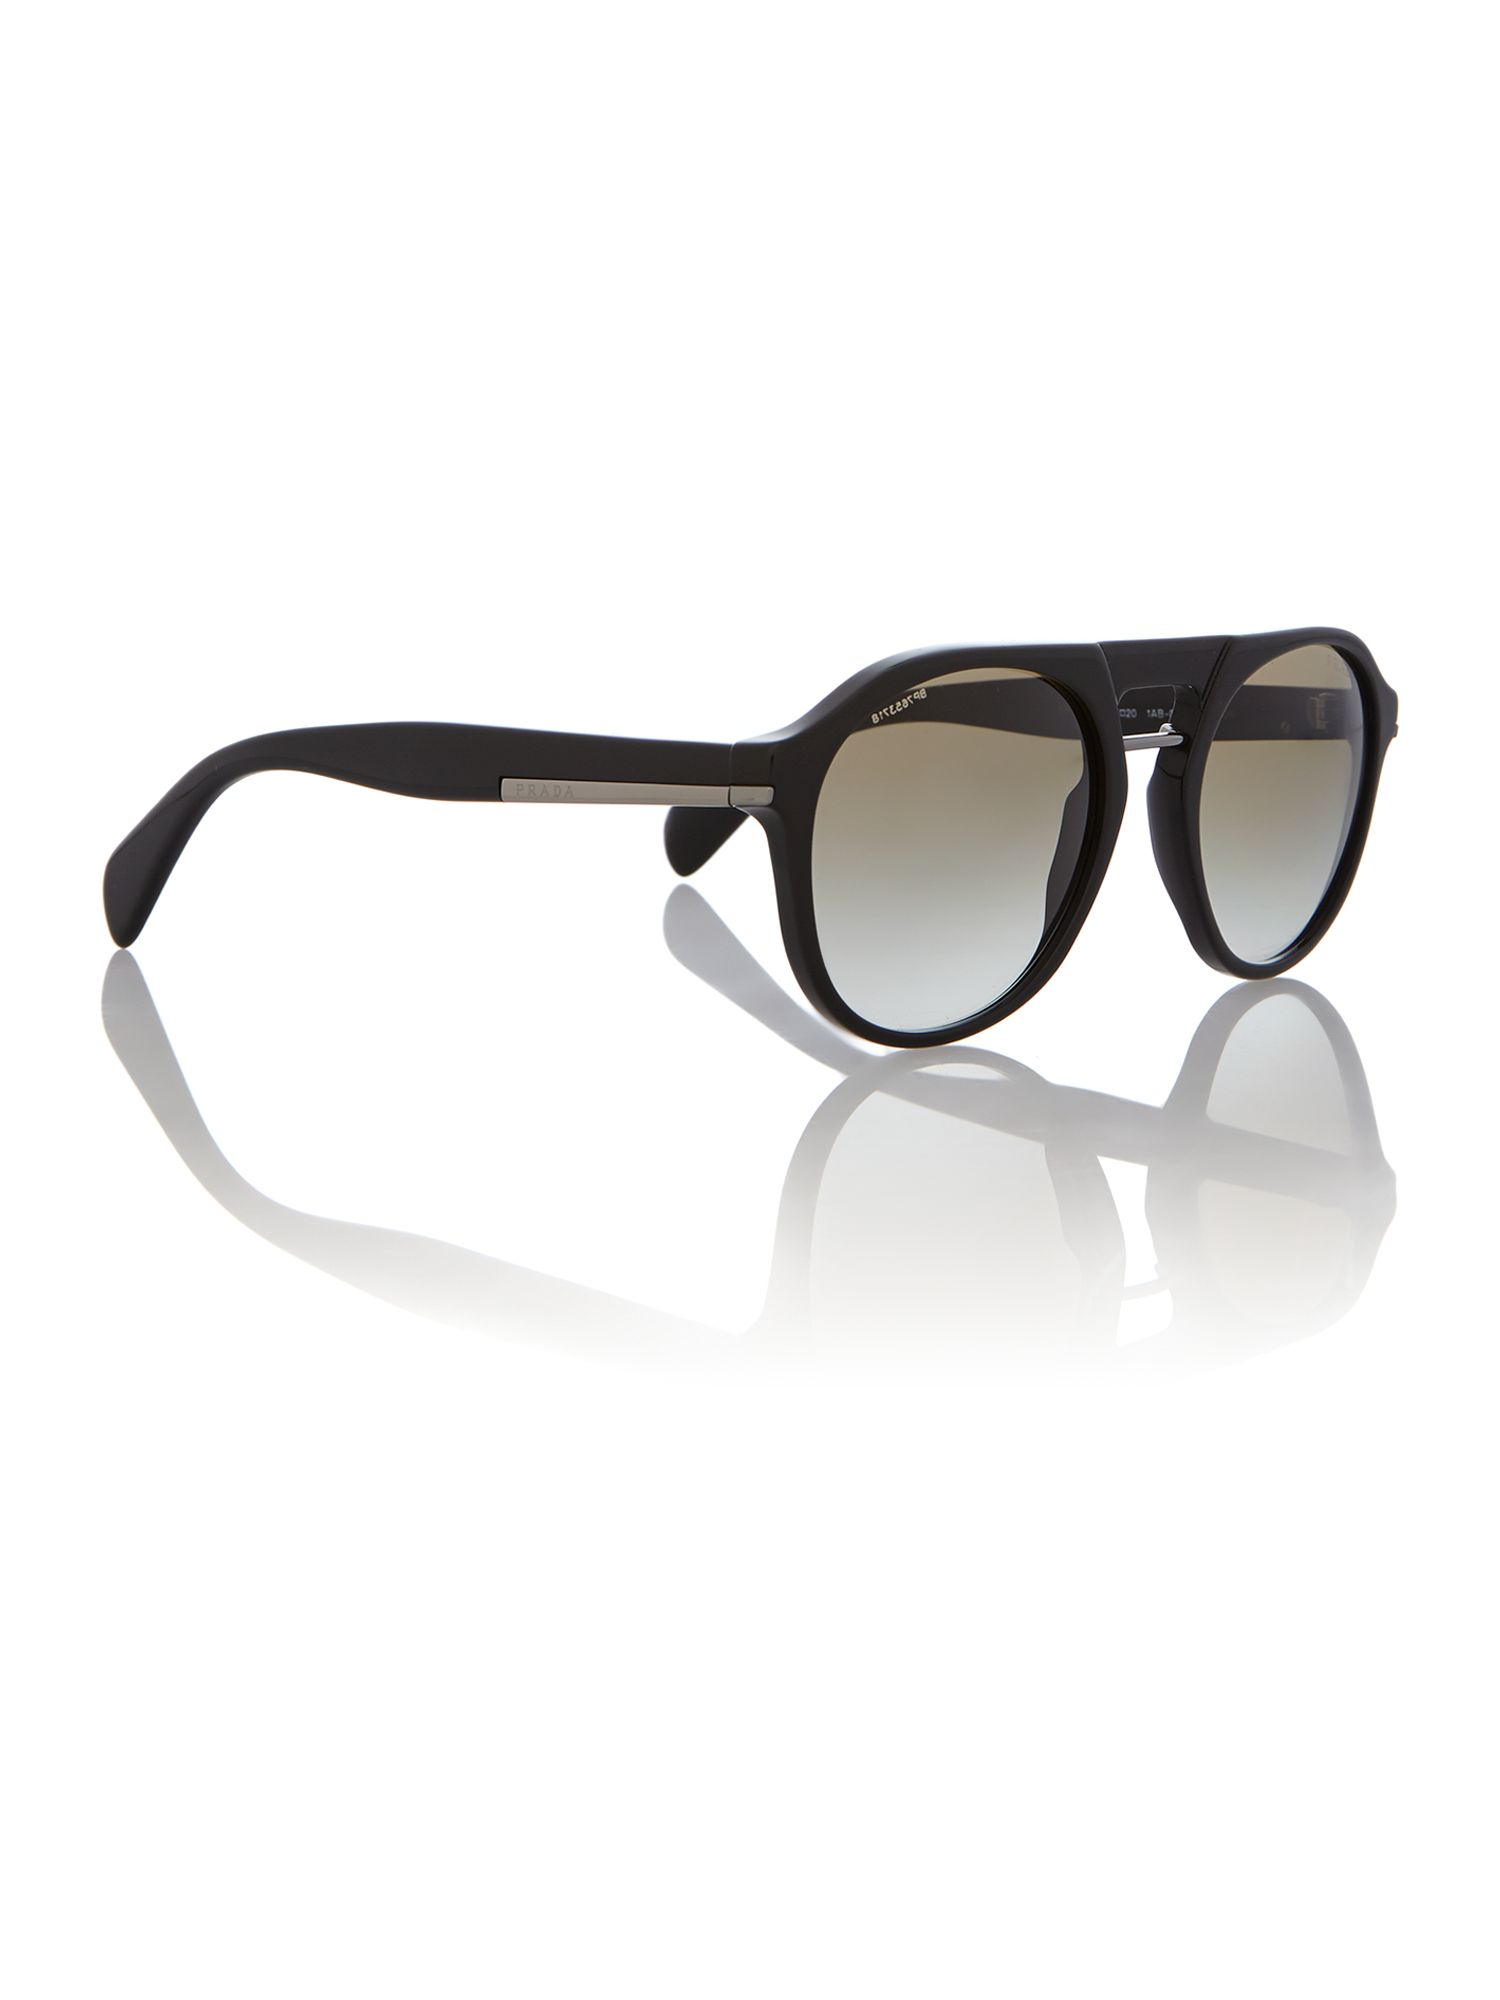 Pr 09ps men`s phantos sunglasses